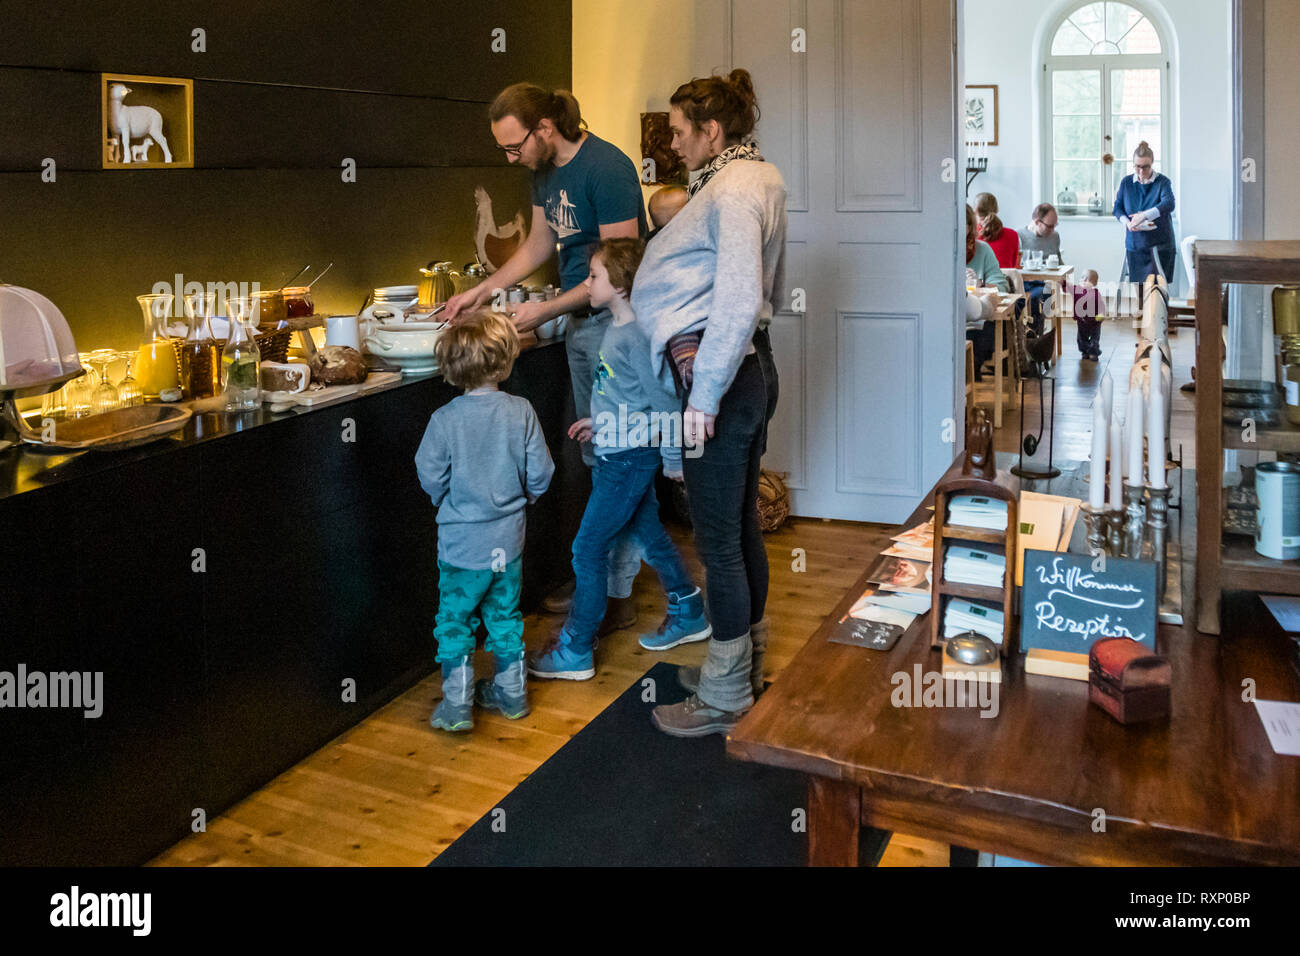 The Kavaliershaus has a lot to offer families with children. Everyone gets their money's worth at the breakfast buffet in the classroom of Hotel Kavaliershof in Fincken, Germany Stock Photo